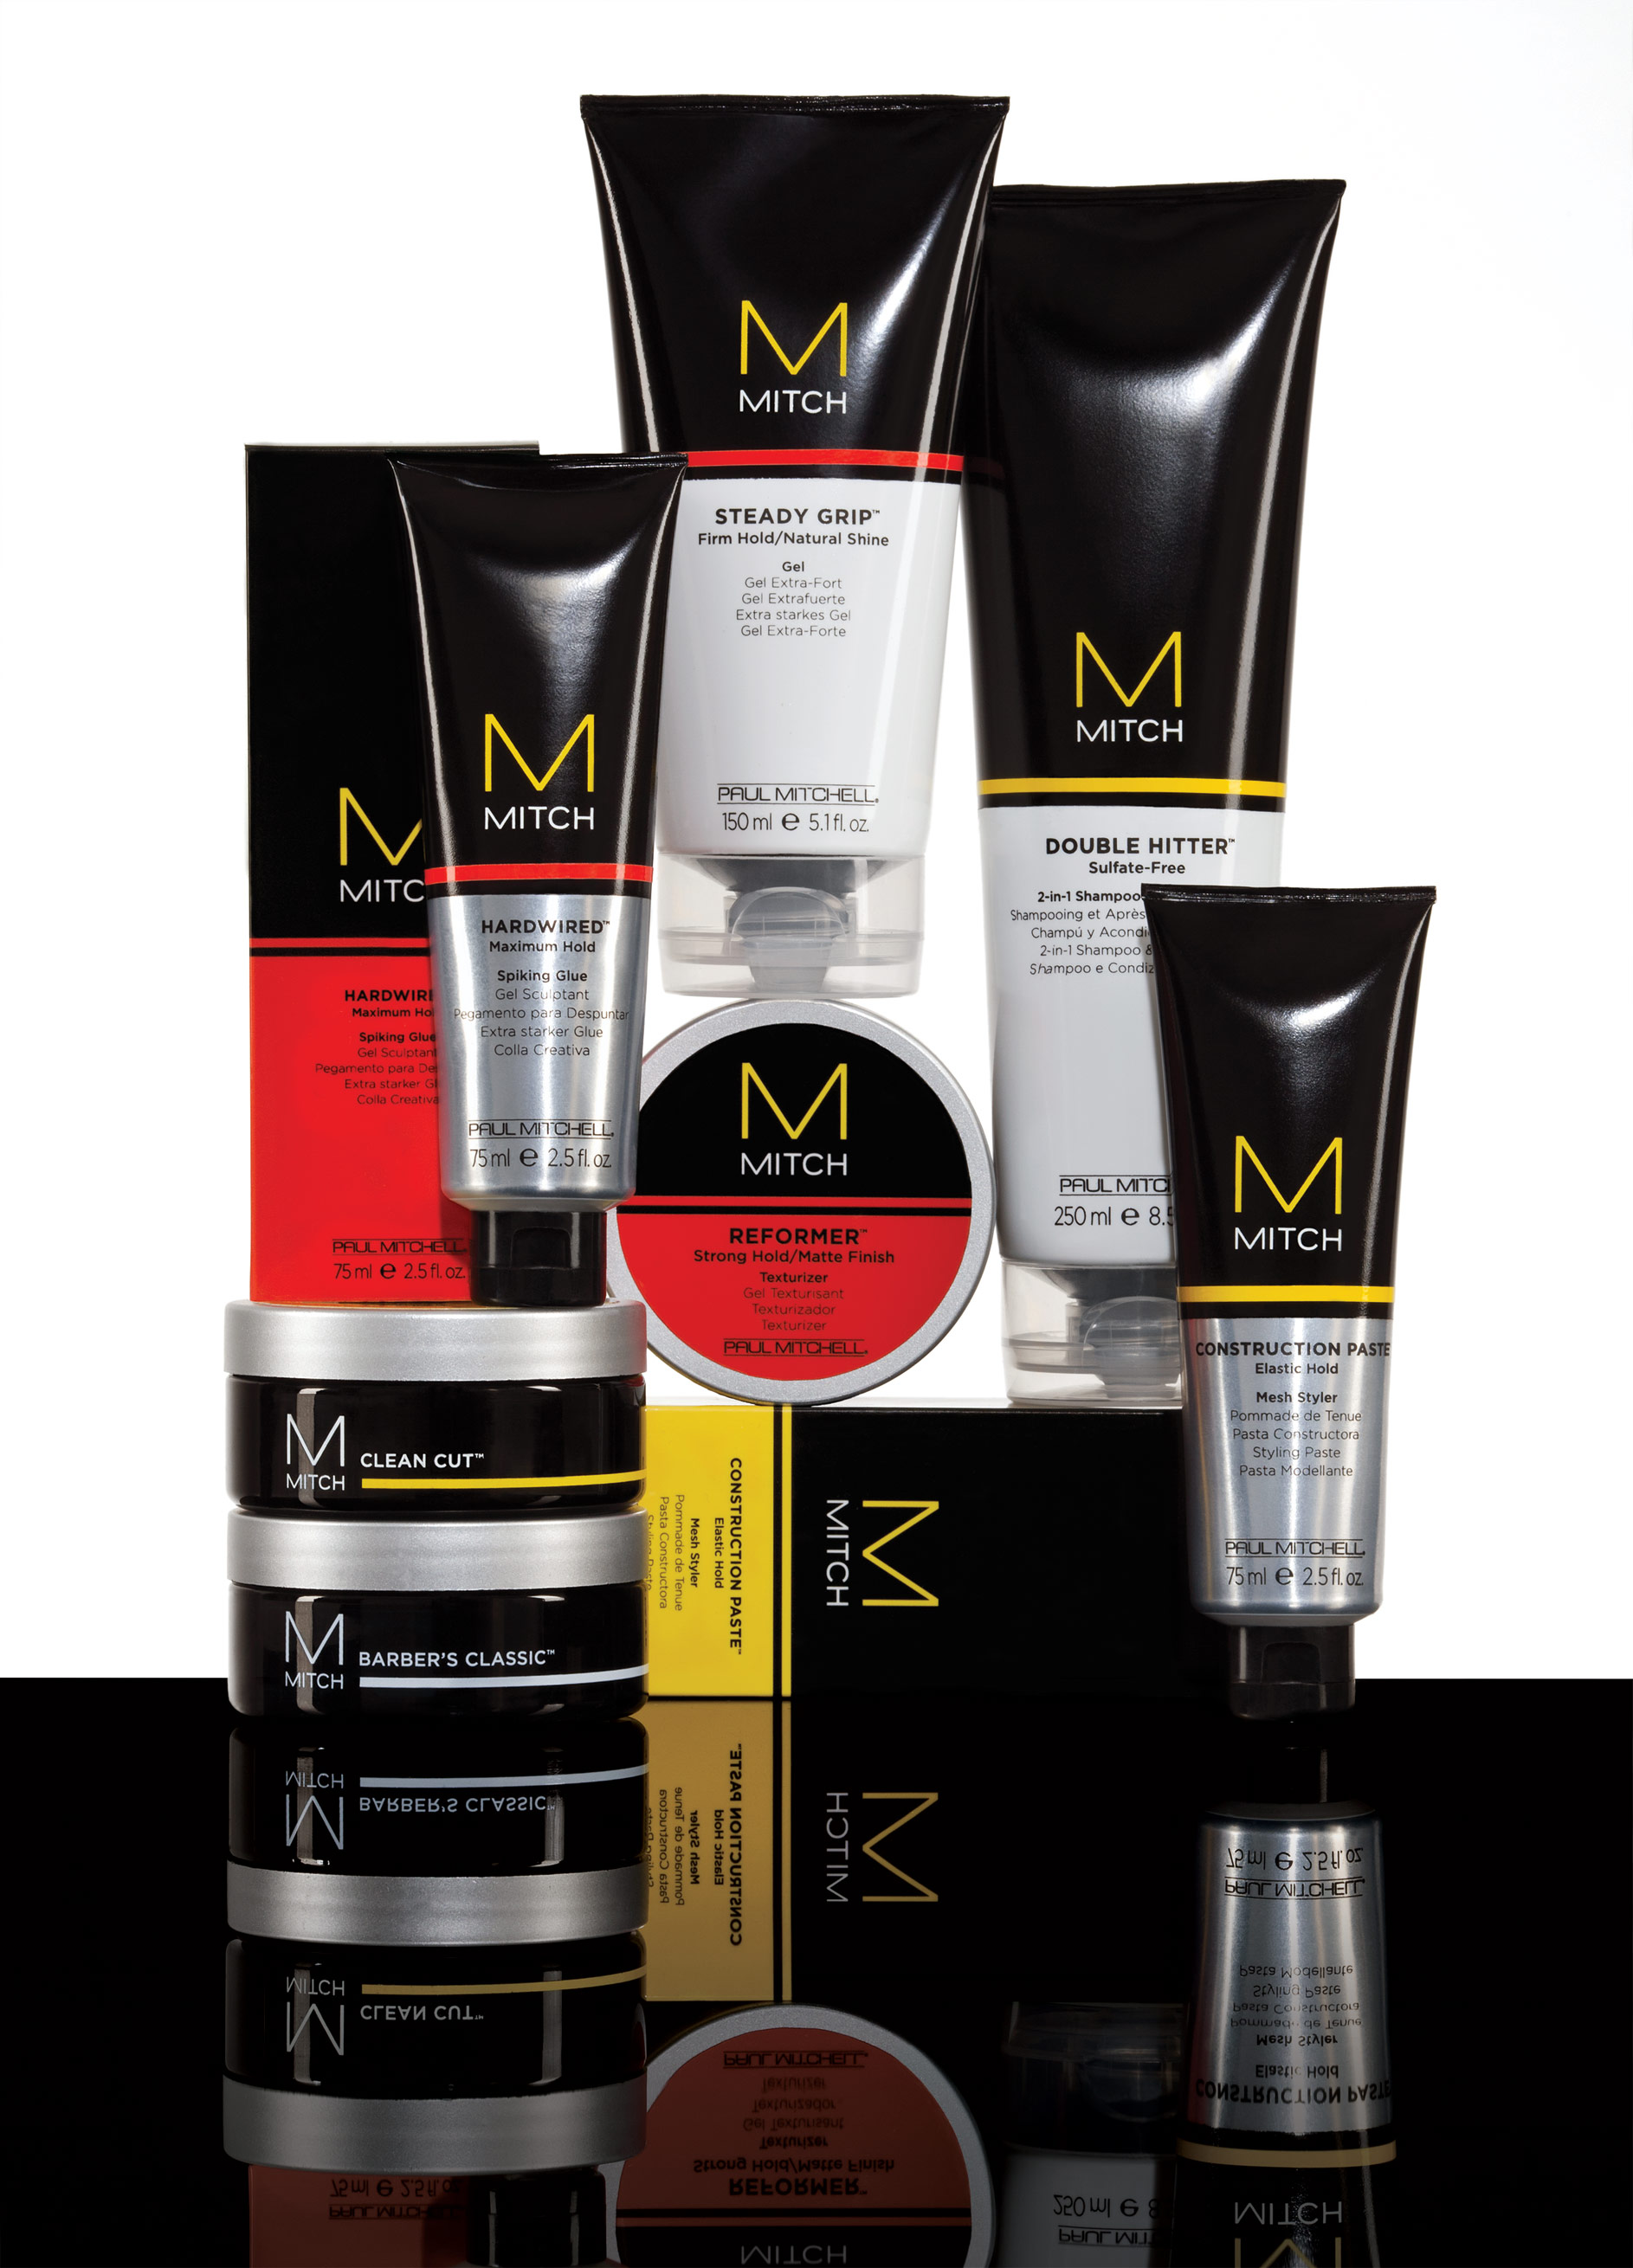 Style isn't born it's groomed!  Mitch Double Hitter  is a great Sulfate free 2 in 1 shampoo and conditioner that is great for all men. It leaves hair silky smooth and is formulated especially for men! This deep cleansing shampoo can also be used as a body wash with a great fragrance any Mitch man, or woman would love!